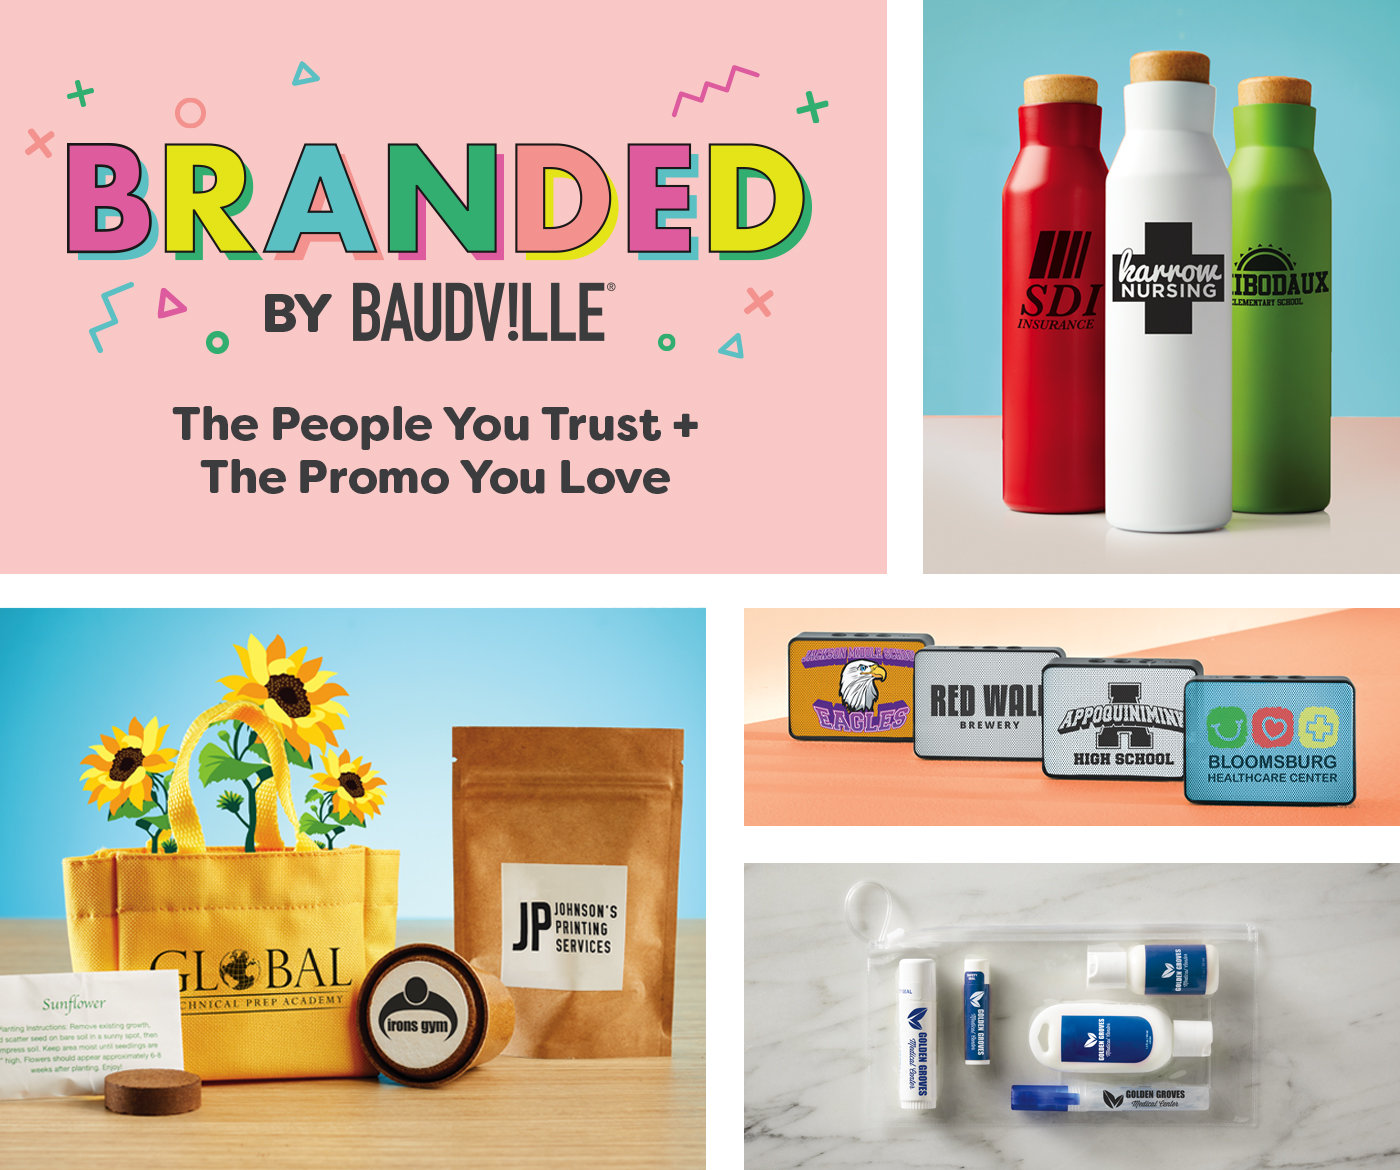 Baudville promotional items category mobile